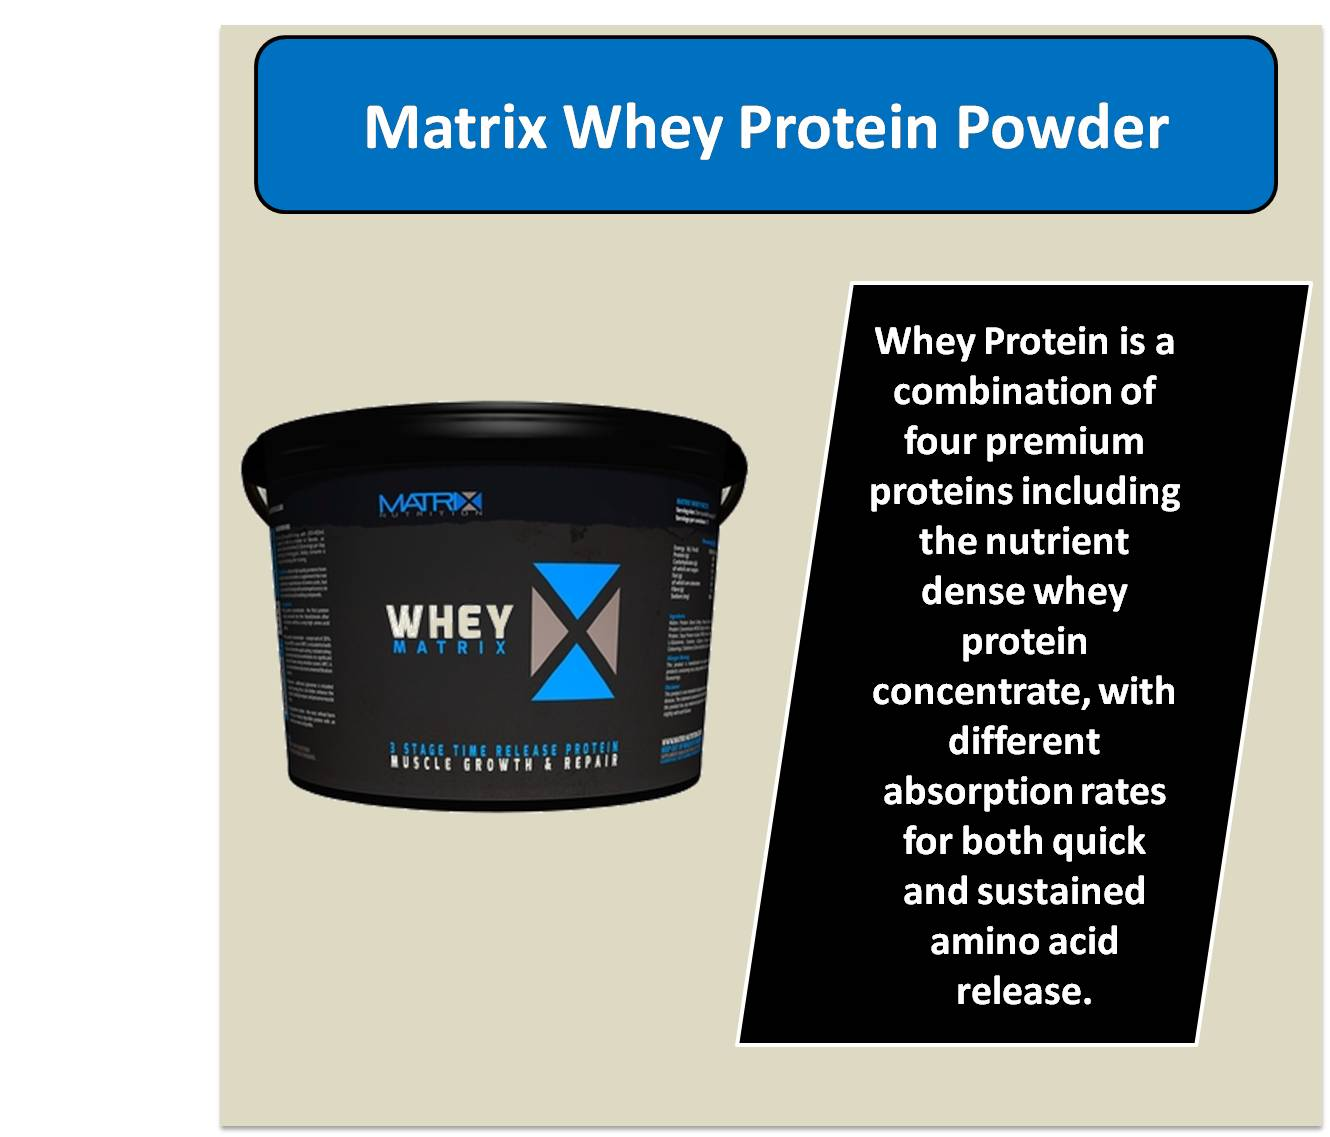 Matrix Whey Protein Powder